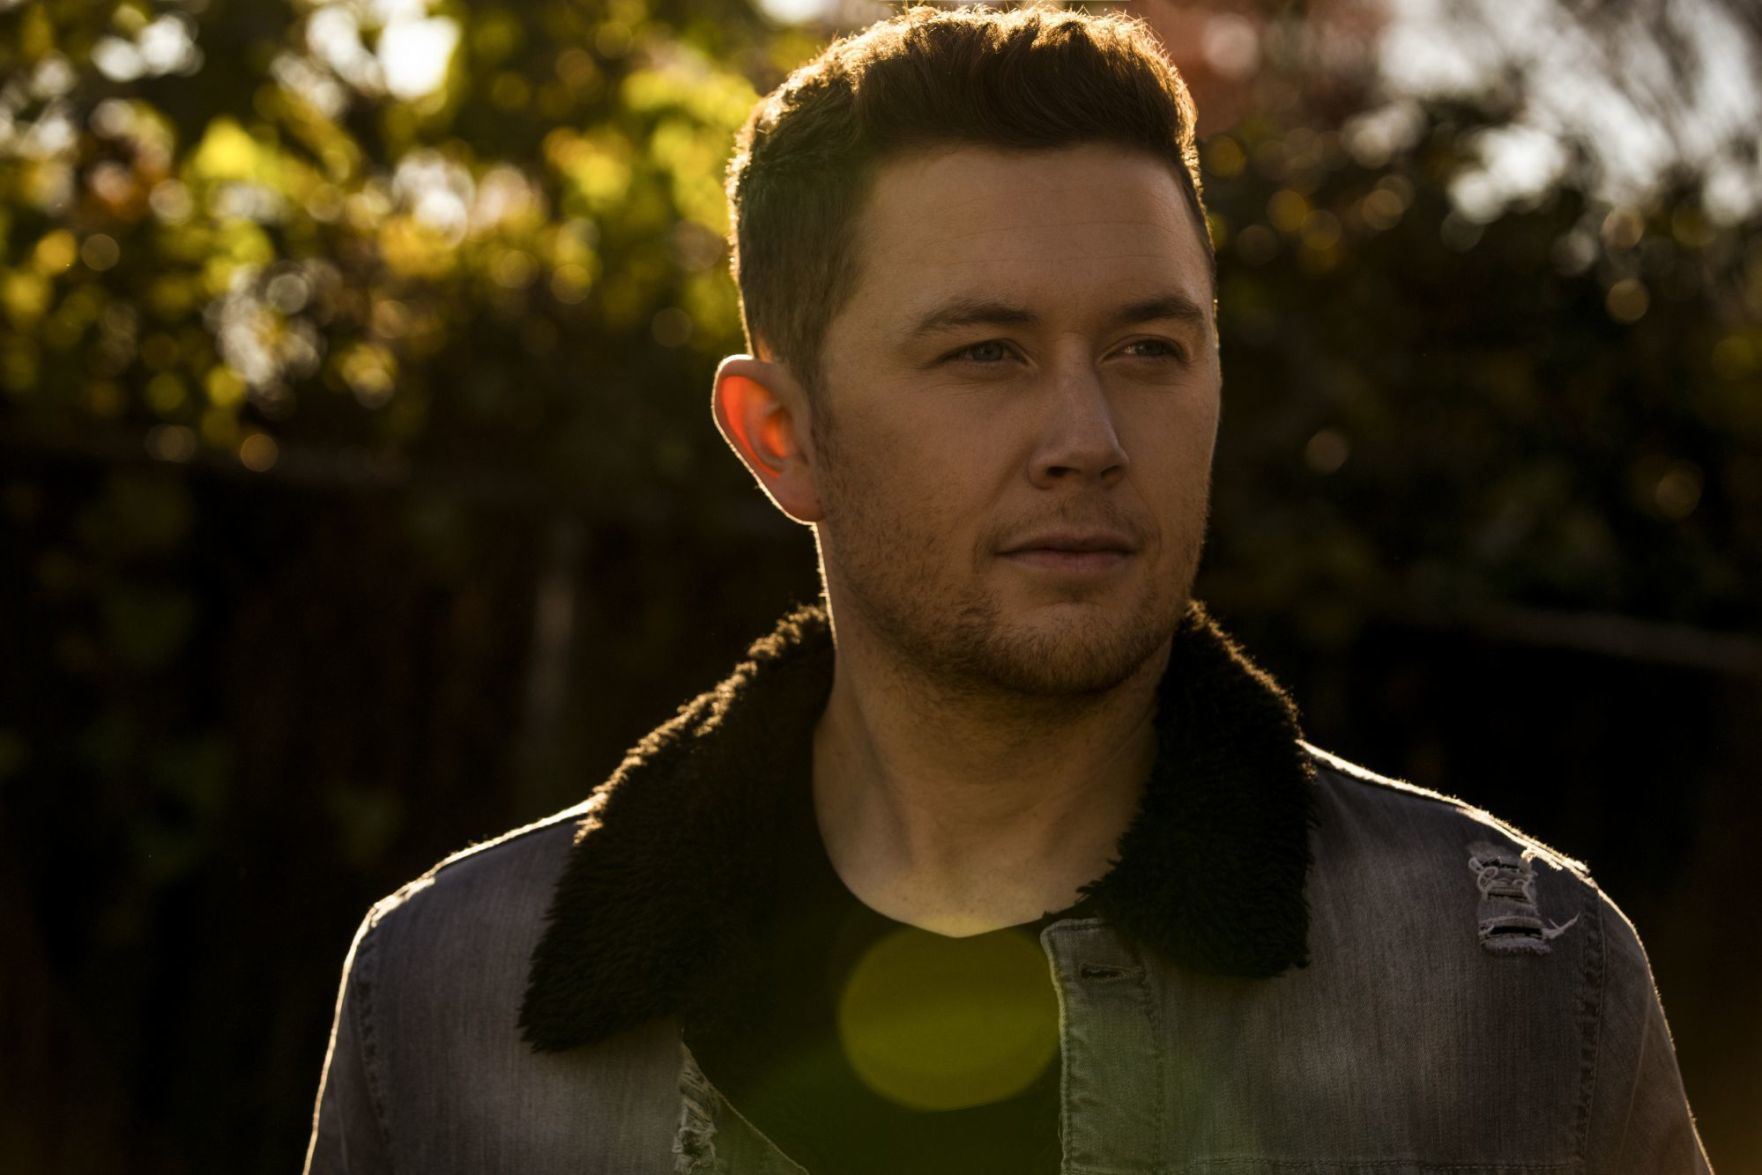 Is scotty mccreery dating anyone 2019 nba